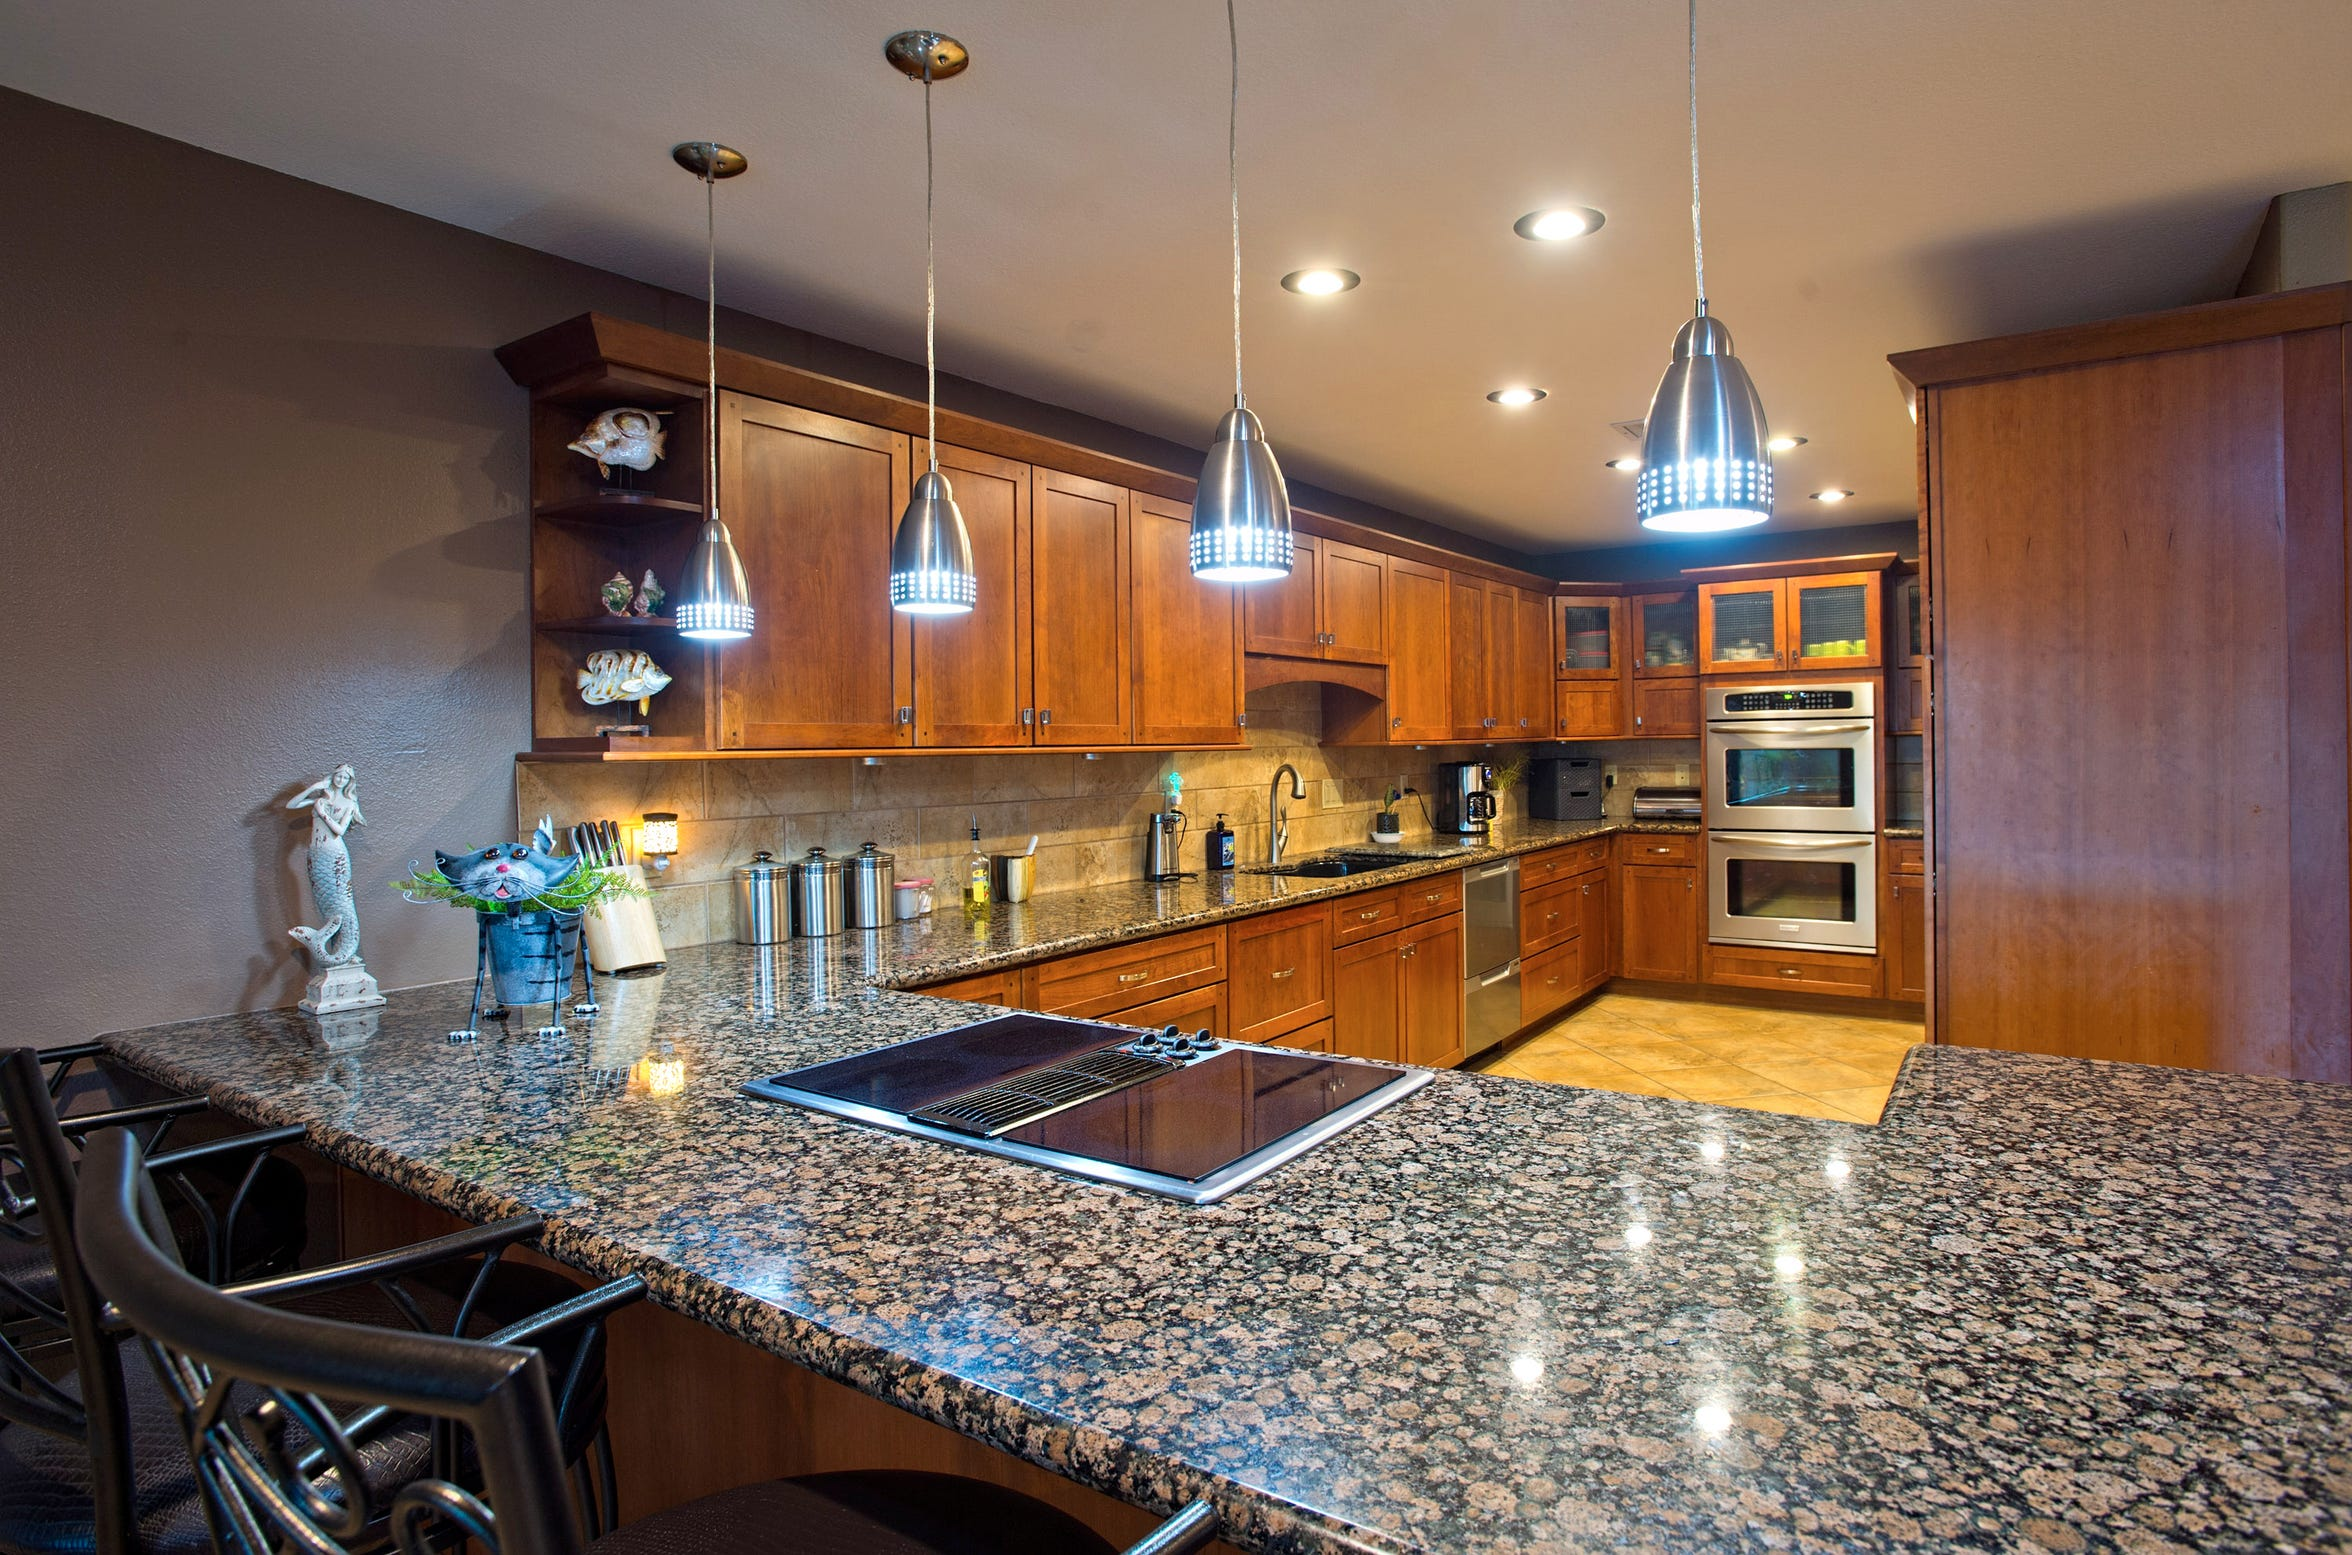 The kitchen features a double door dishwasher, custom cabinetry, pull out pantry, built in Frigidaire Extra wide fridge/freezer, granite counters and a breakfast bar